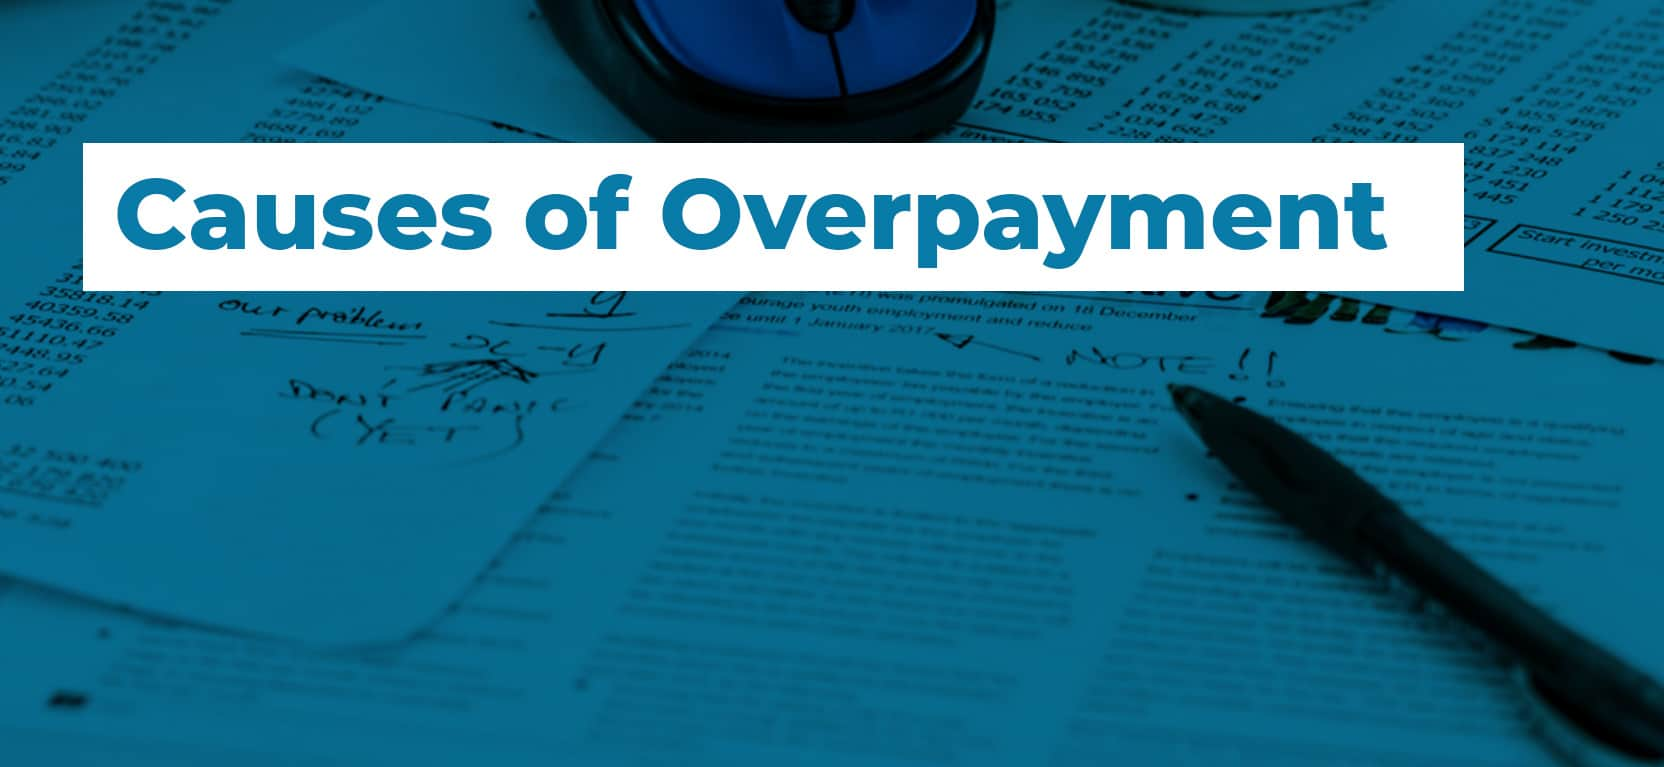 62 Causes of Overpayment3